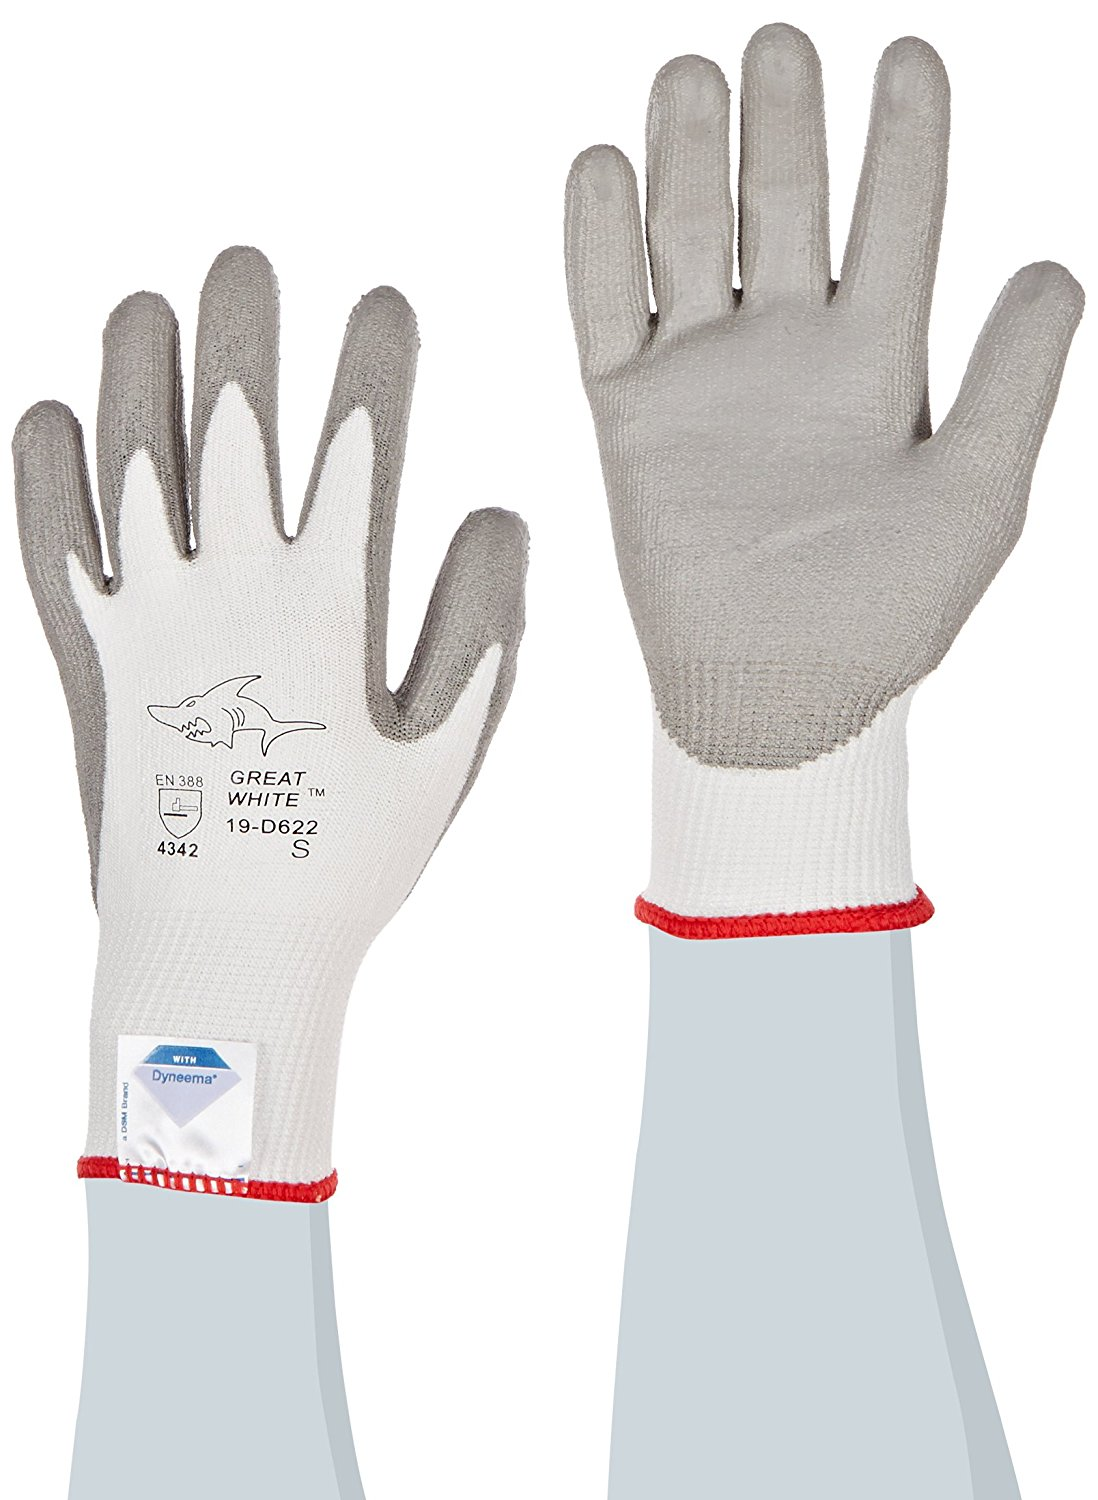 Great White 19-D622/S 13-Gauge Dyneema/Lycra Cut Resistant Gloves with Polyurethane Coated Palm and Fingers, White/Gray, Small, 1-Dozen